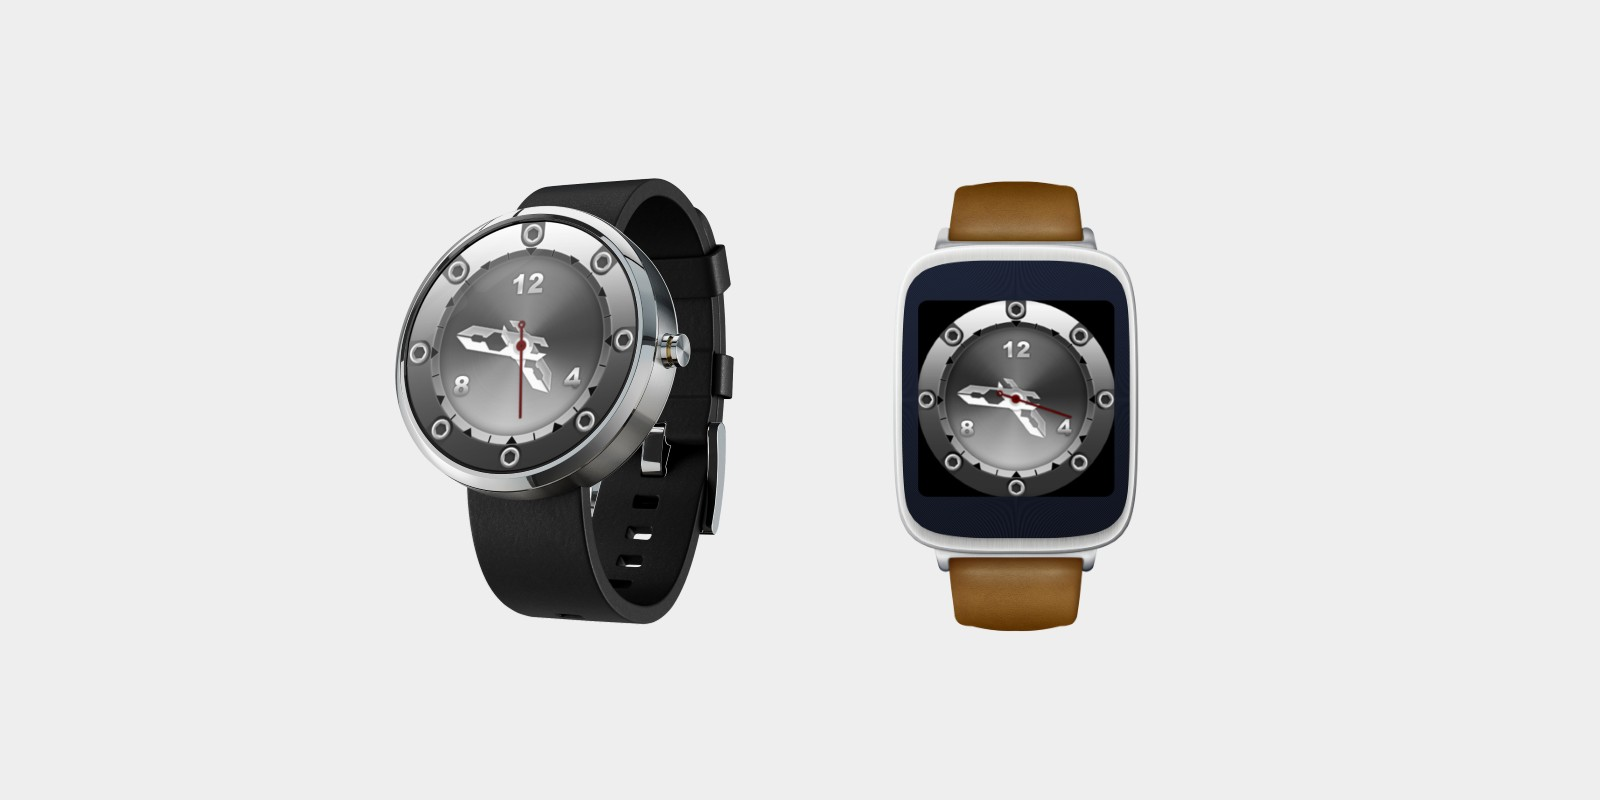 Metal Watch Face - Android Wear OS Source Code